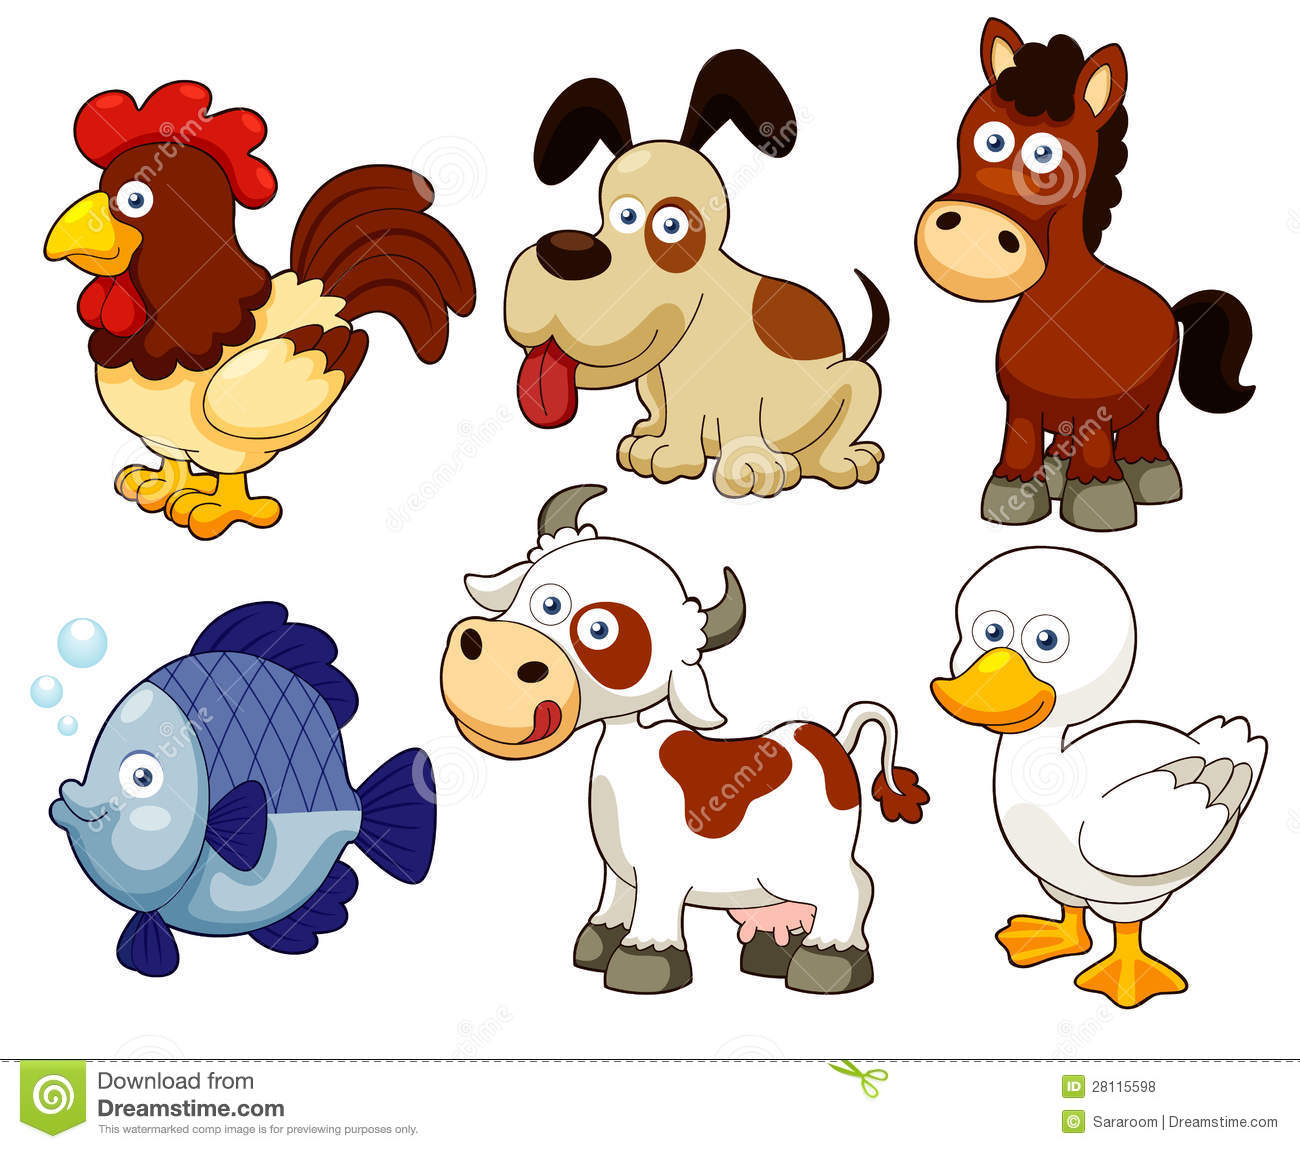 Animal clipart clipart freeuse Clipart animal images - ClipartFest freeuse